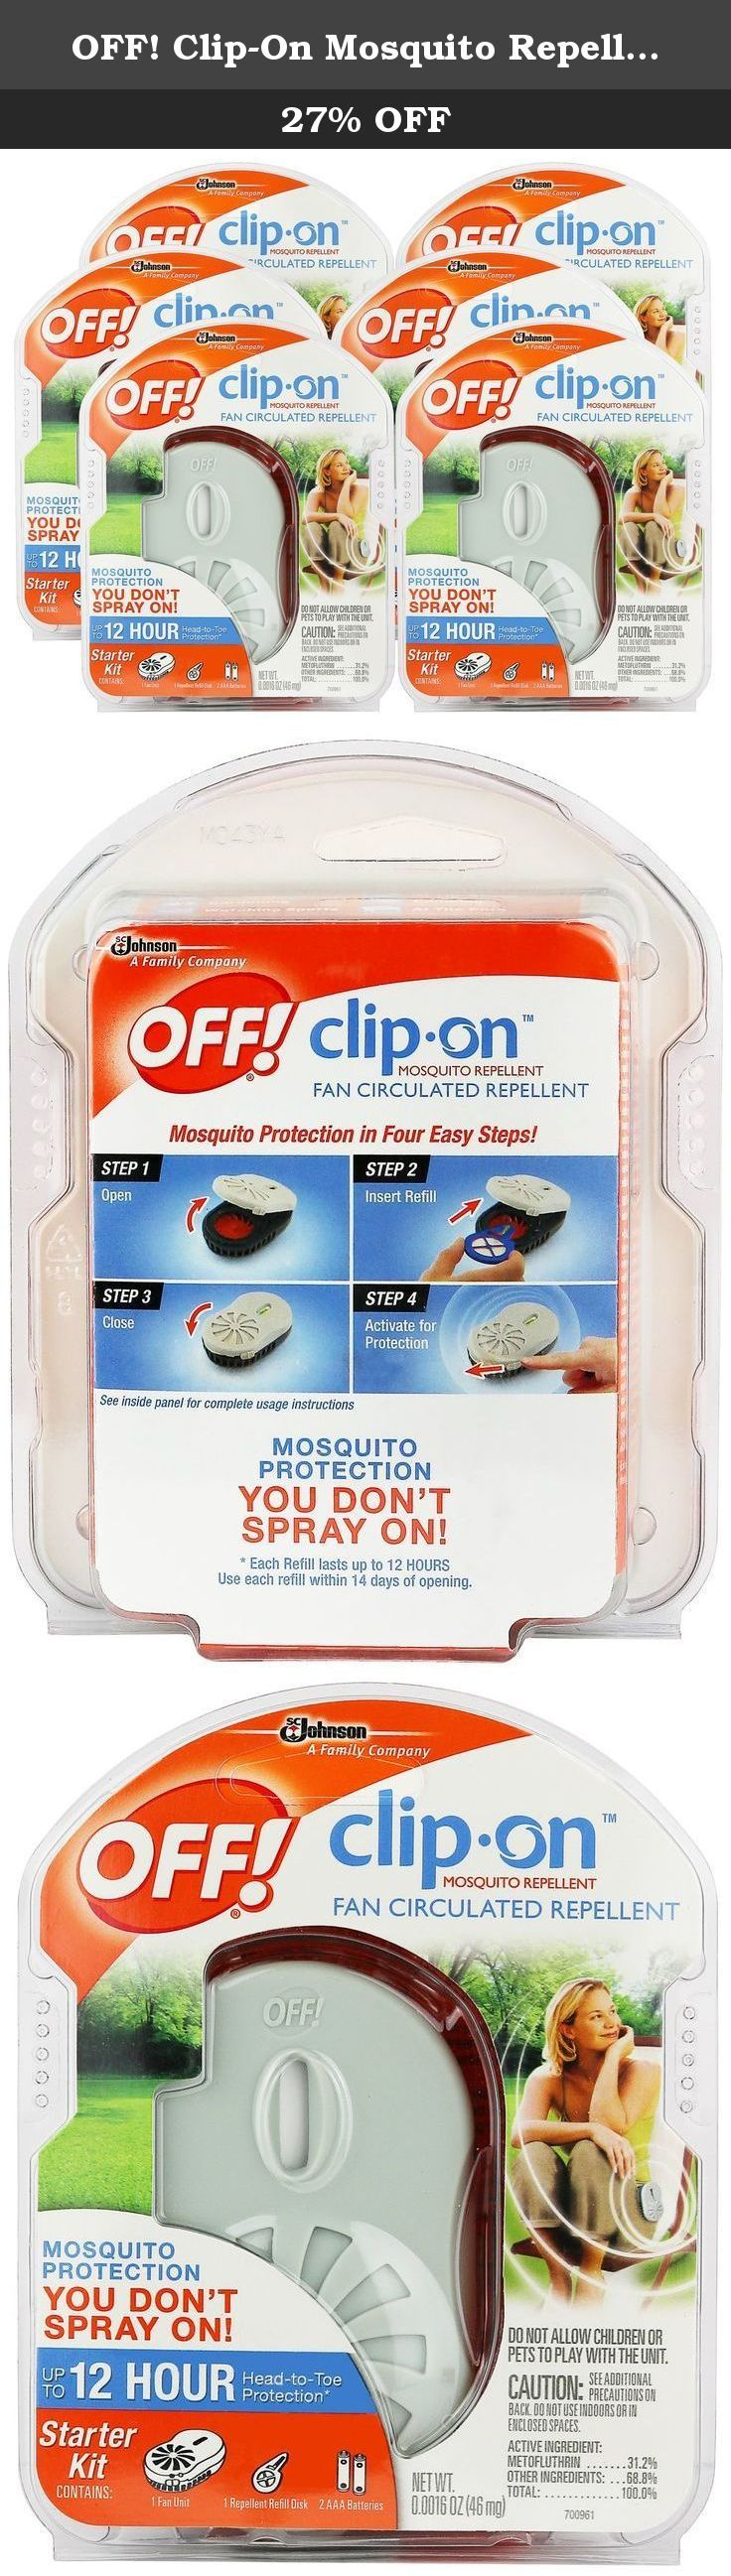 OFF! Clip-On Mosquito Repellent Fan 6-Pack. Mosquito protection you don't spray on! Head to toe protection for up to 12 hours. Contains: 1 repellent fan unit, 1 refill, 2 AAA batteries. Great for backyard, gardening, watching sports, at the beach, camping, at the park.